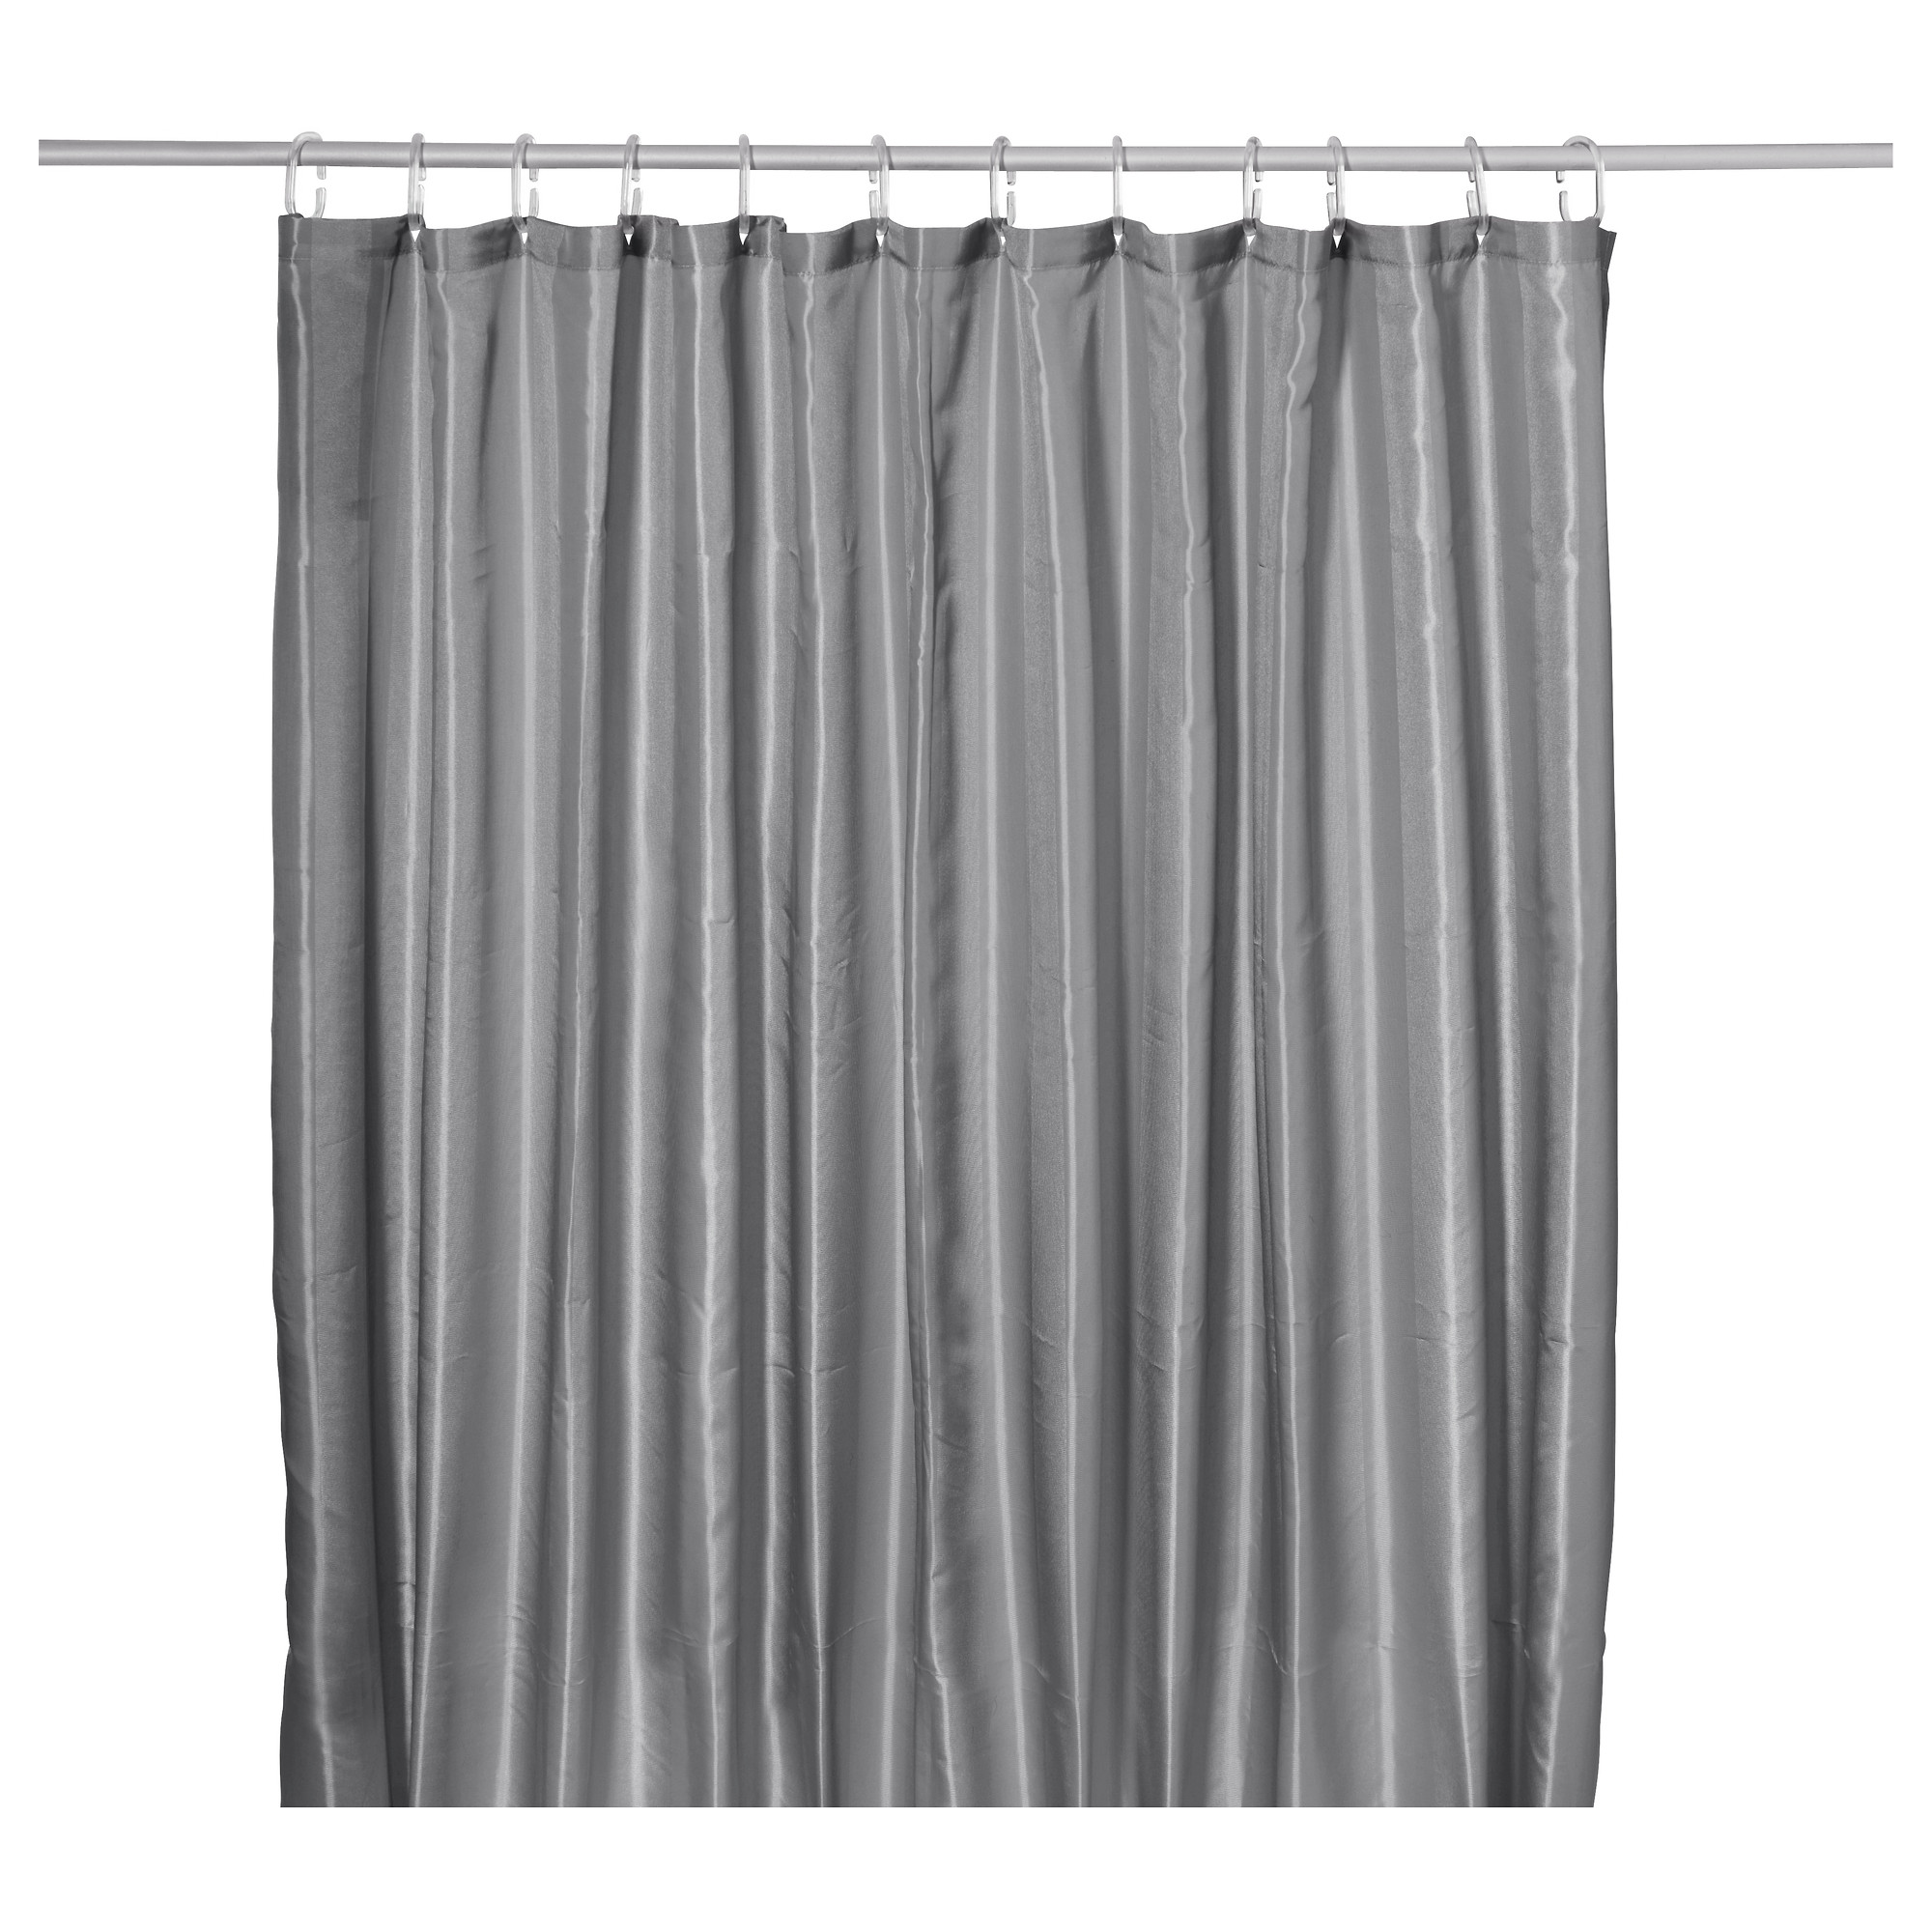 white curtains gray c dillards rings bath care personal blue home shower curtain zi